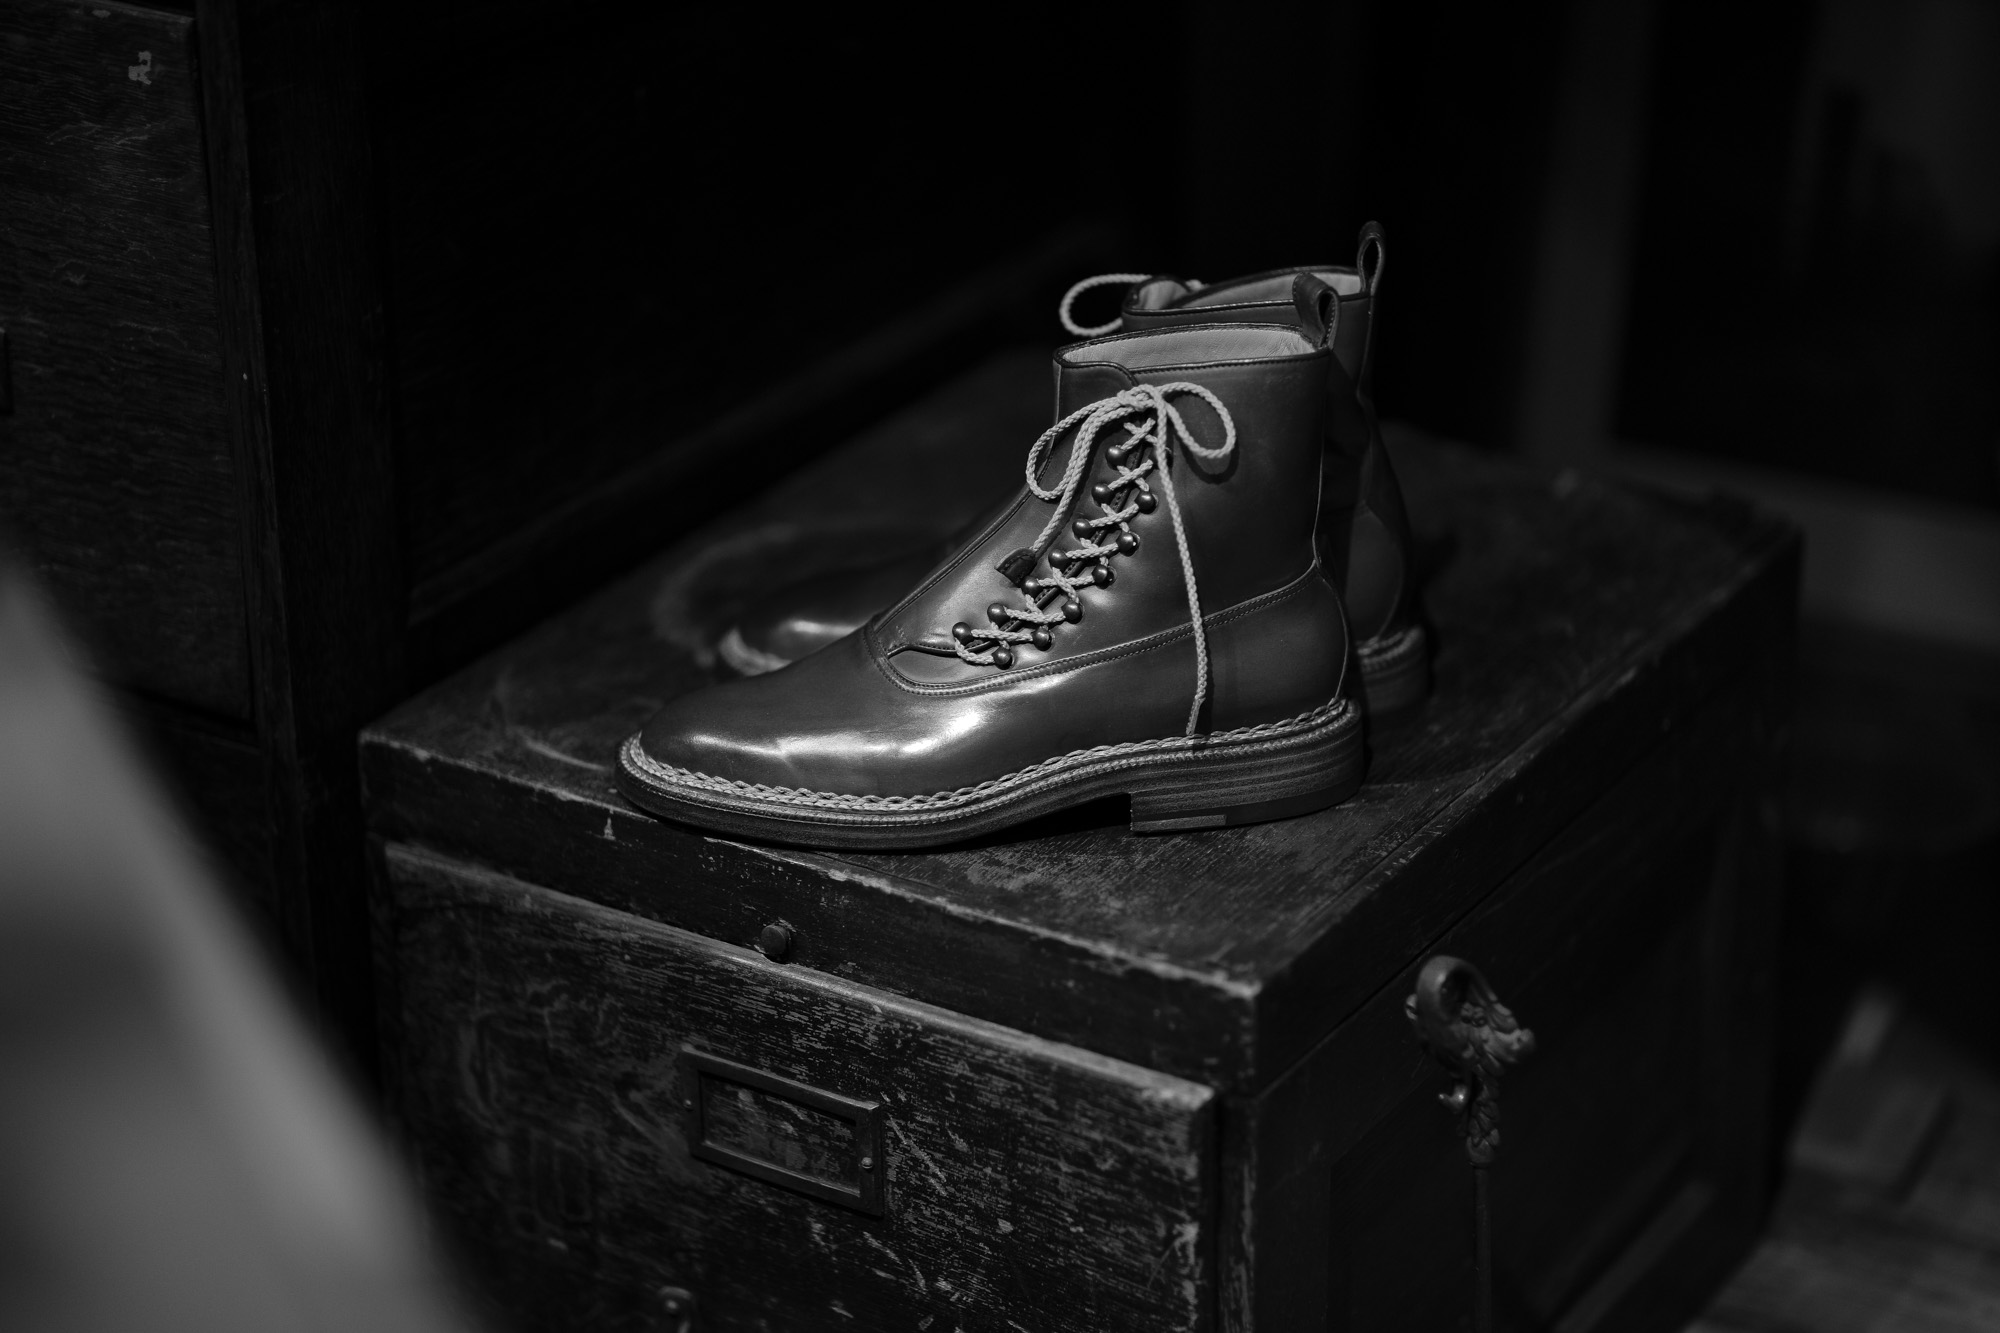 ENZO BONAFE // ART.3983 Lace up Boots 【CORDOVAN BOURBON】 made in italy 【Special Boots】エンツォボナフェ レースアップブーツ コードバン バーボン スペシャルブーツ 愛知 名古屋 altoediritto アルトエデリット